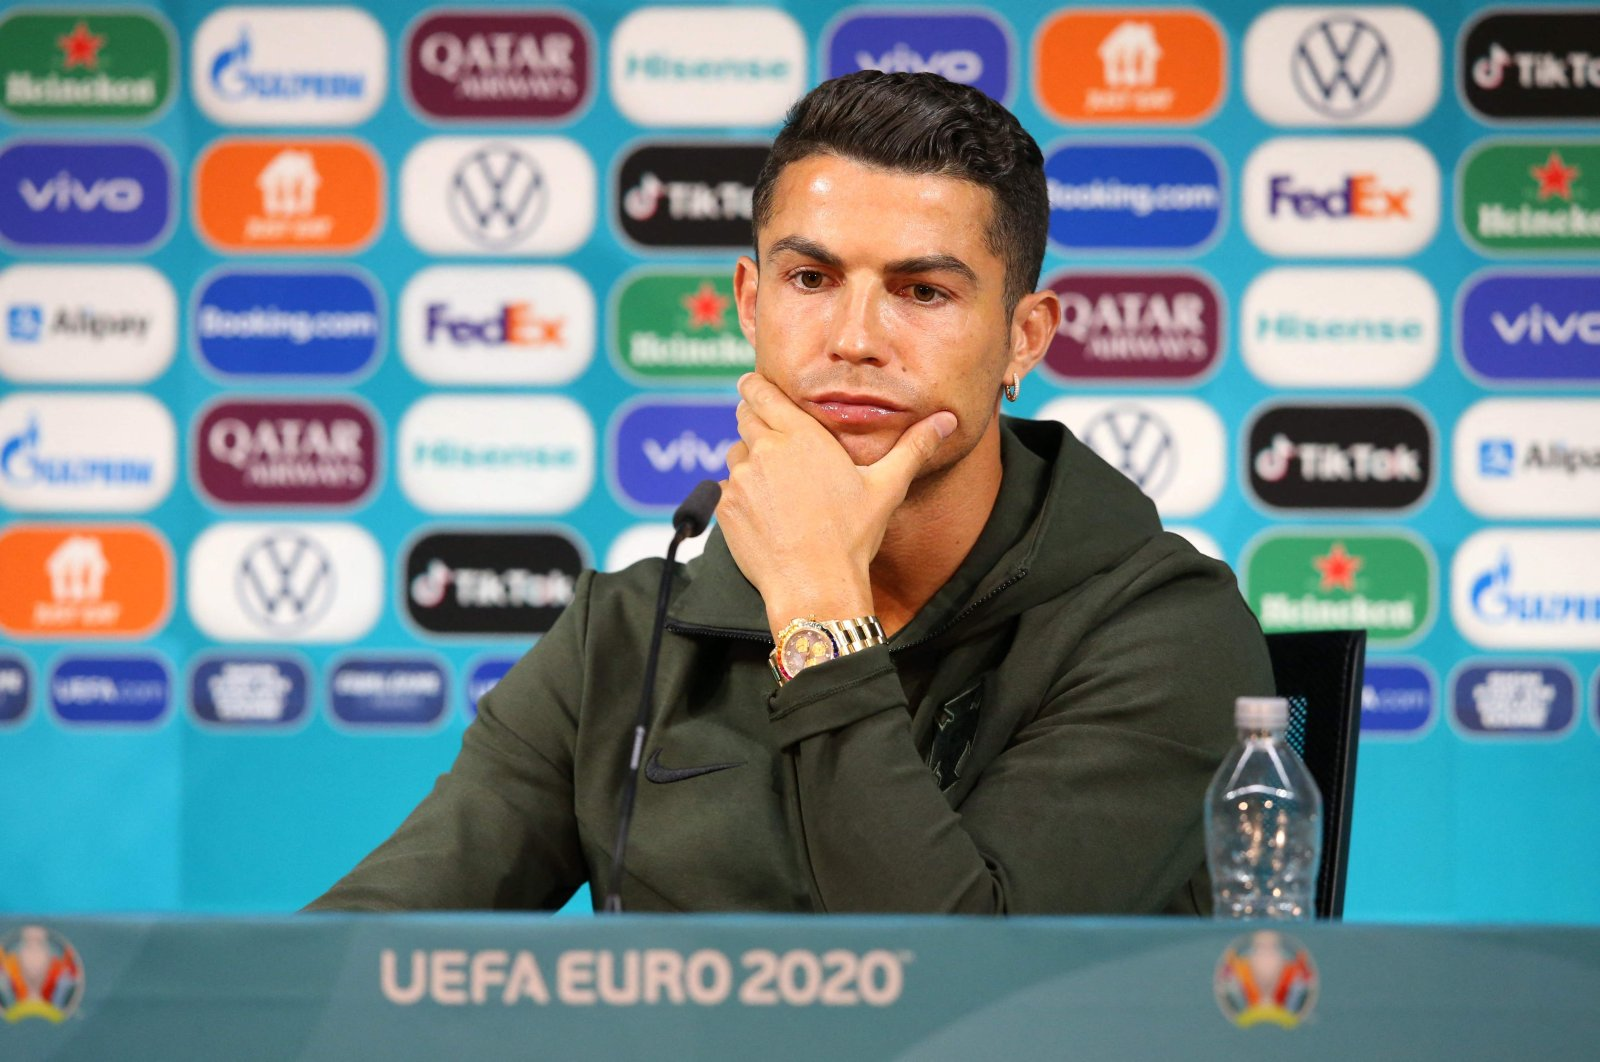 Portugal's forward Cristiano Ronaldo during a press conference at the Puskas Arena in Budapest, on the eve of the UEFA Euro 2020 football match between Hungary and Portugal, June 14, 2021. (UEFA via AFP)